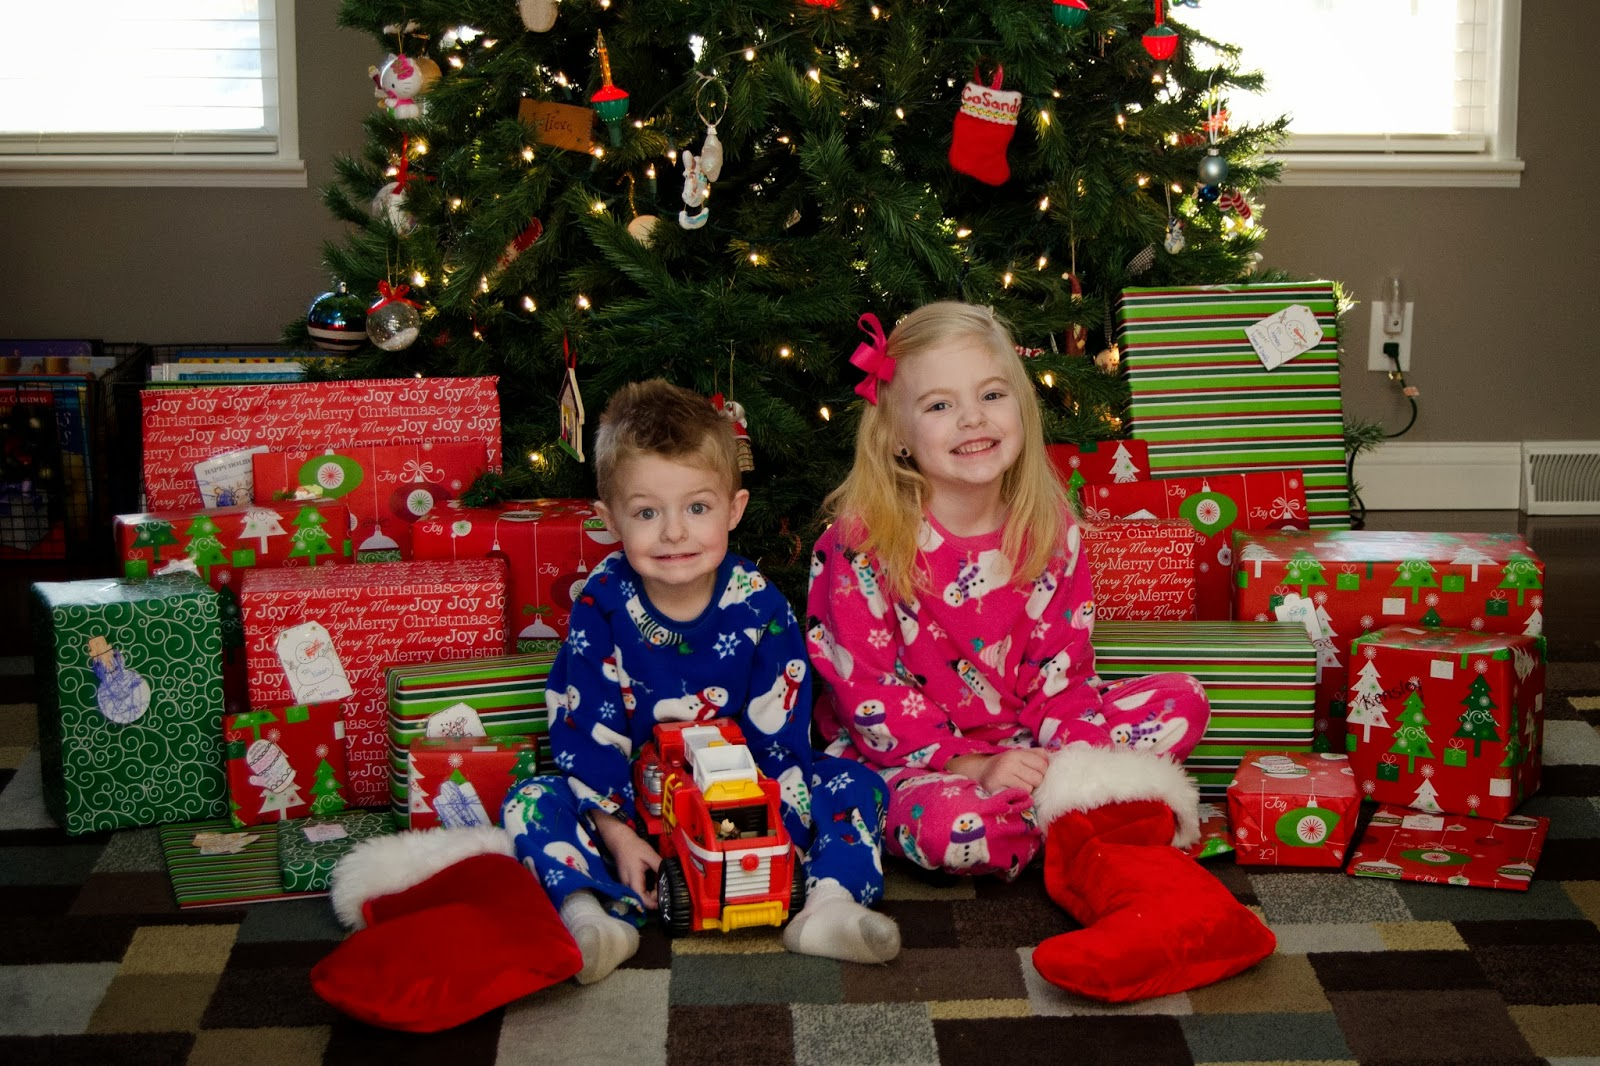 Warm Winter Wishes: Christmas Morning 2013